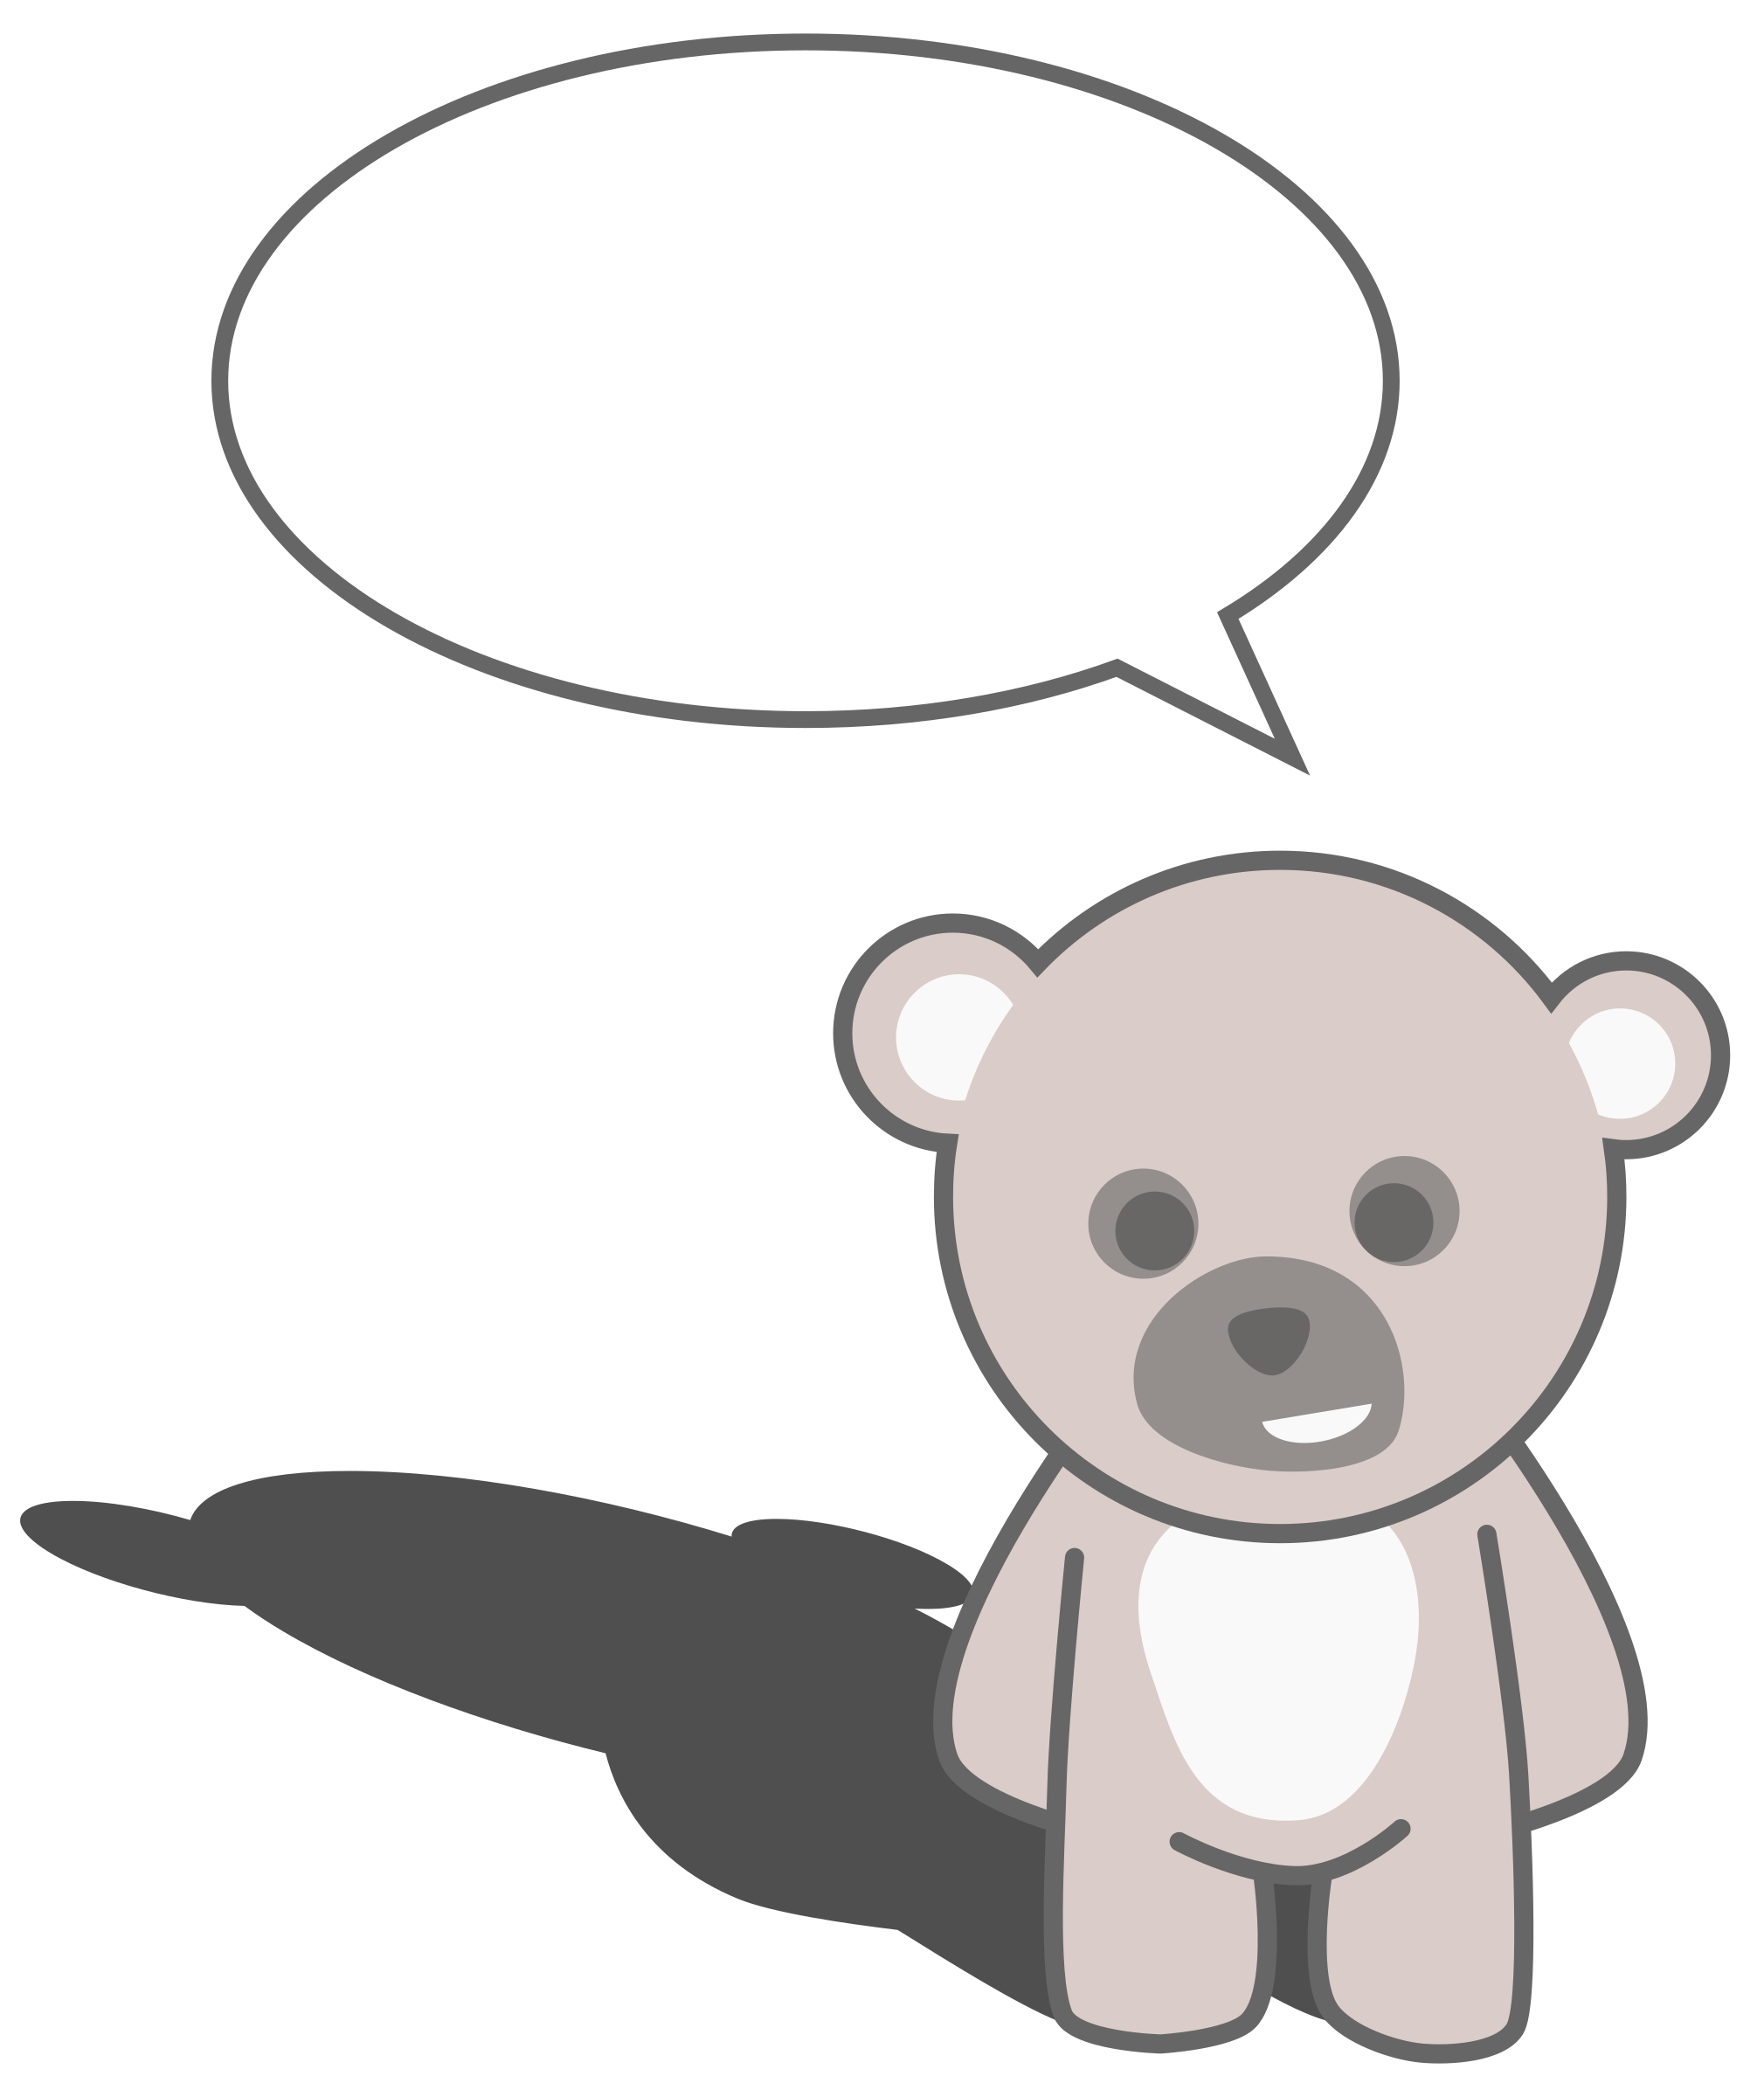 picture royalty free download Teddy bear clipart black and white. Cute at getdrawings com